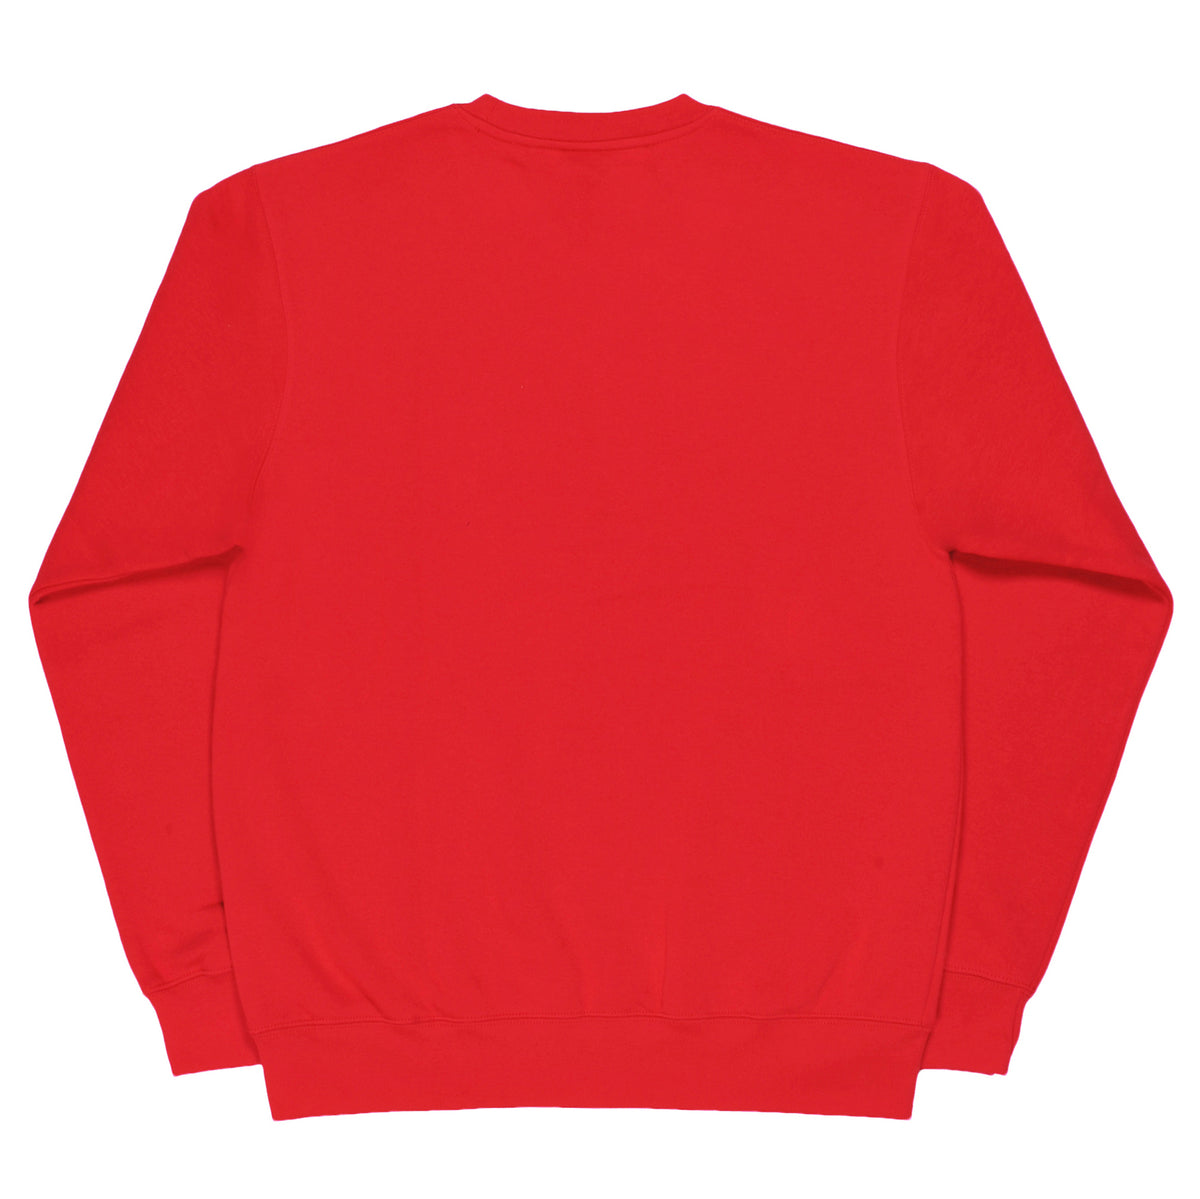 TOYS RAVE red crewneck - RAVE skateboards